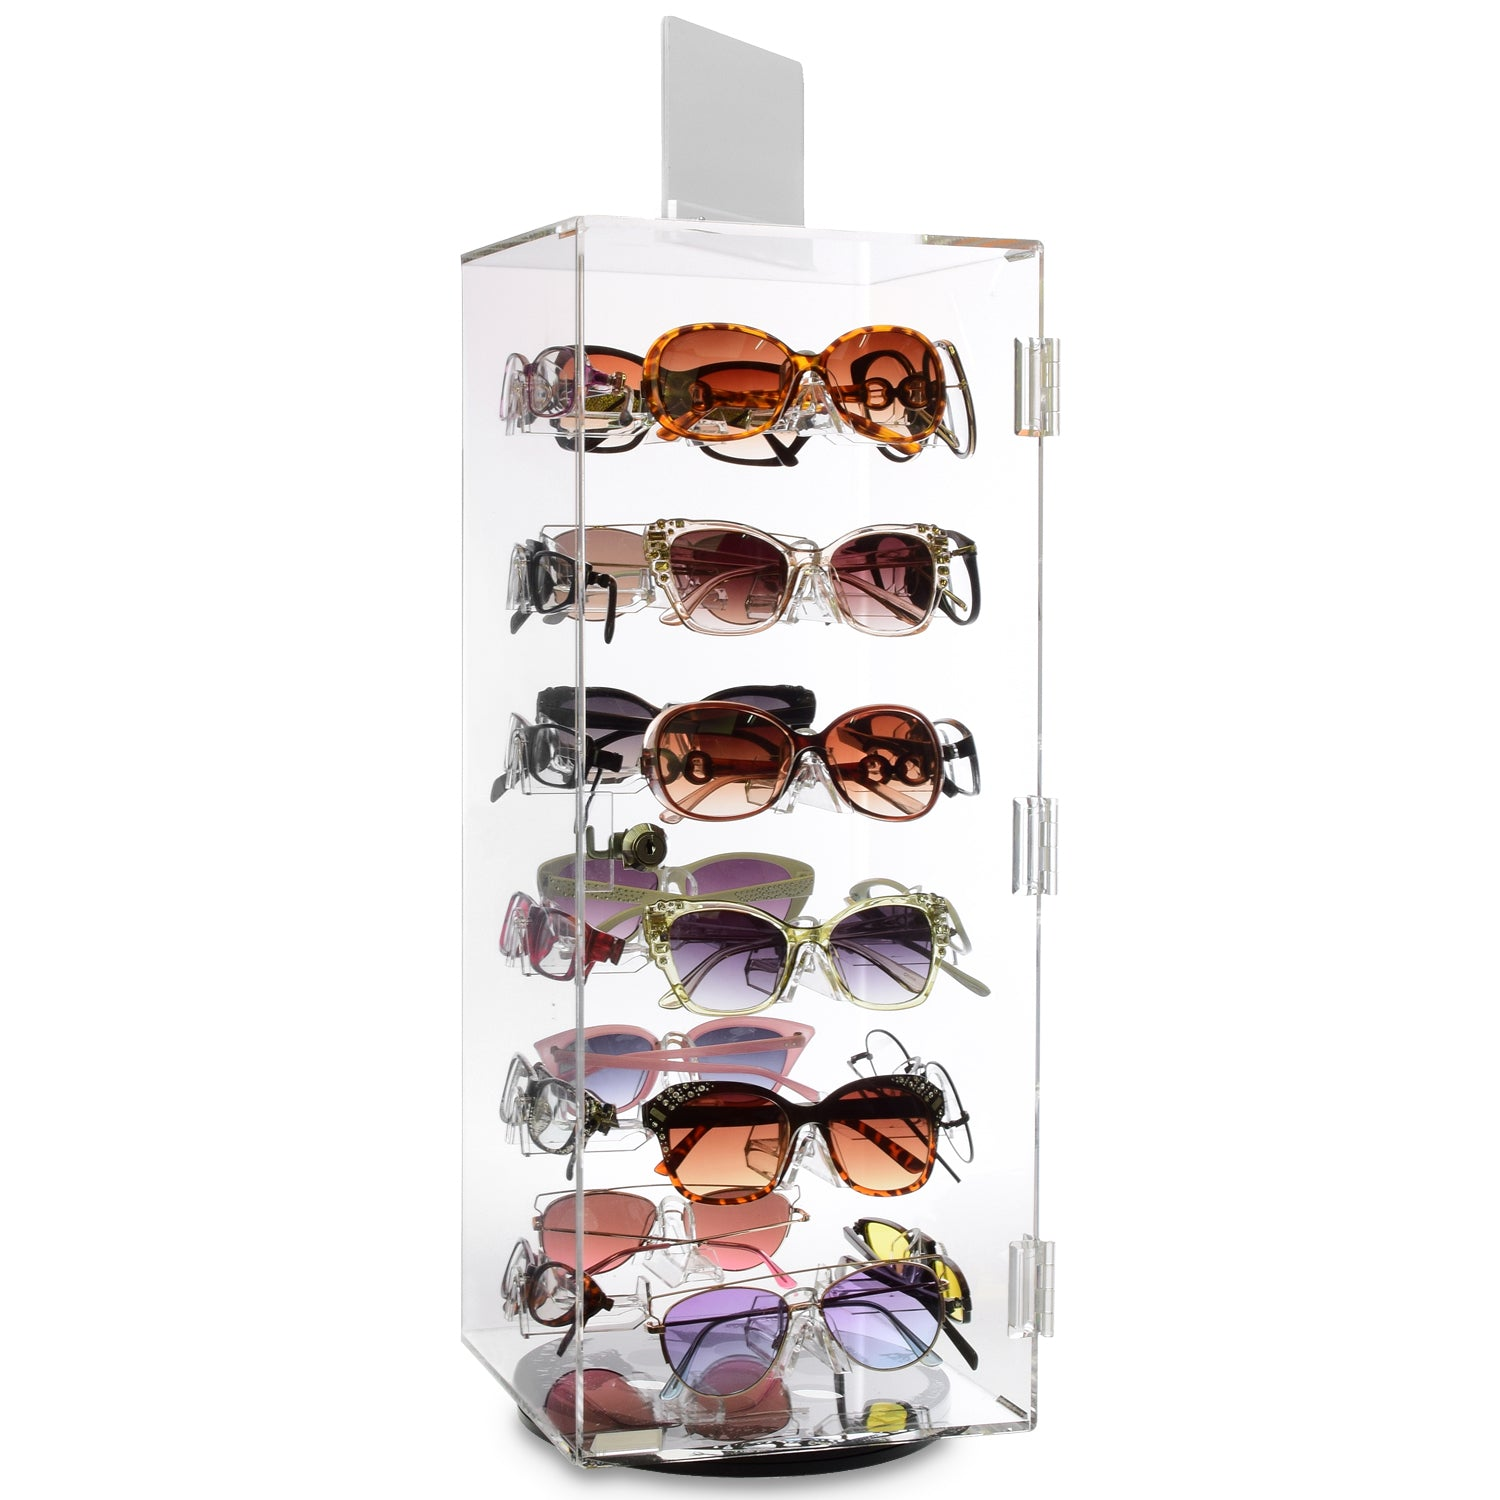 "#AC-124R Acrylic Security Lock Rotating Eyewear Case, 24 Frames. Top Mirror : 4""X6"""